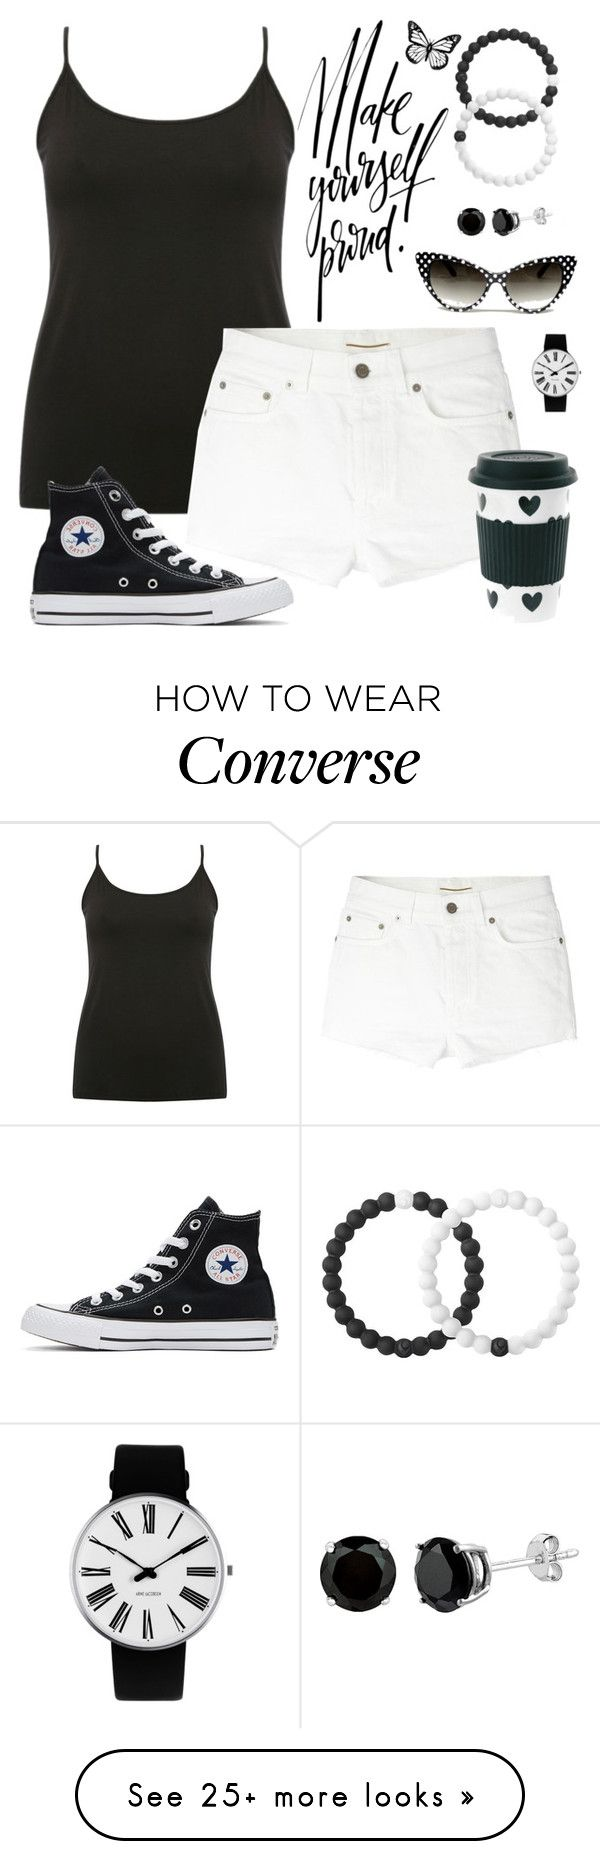 """Summer vacation"" by joyfulmum on Polyvore featuring M&Co, Yves Saint Laurent, Converse, Lokai and Rosendahl"